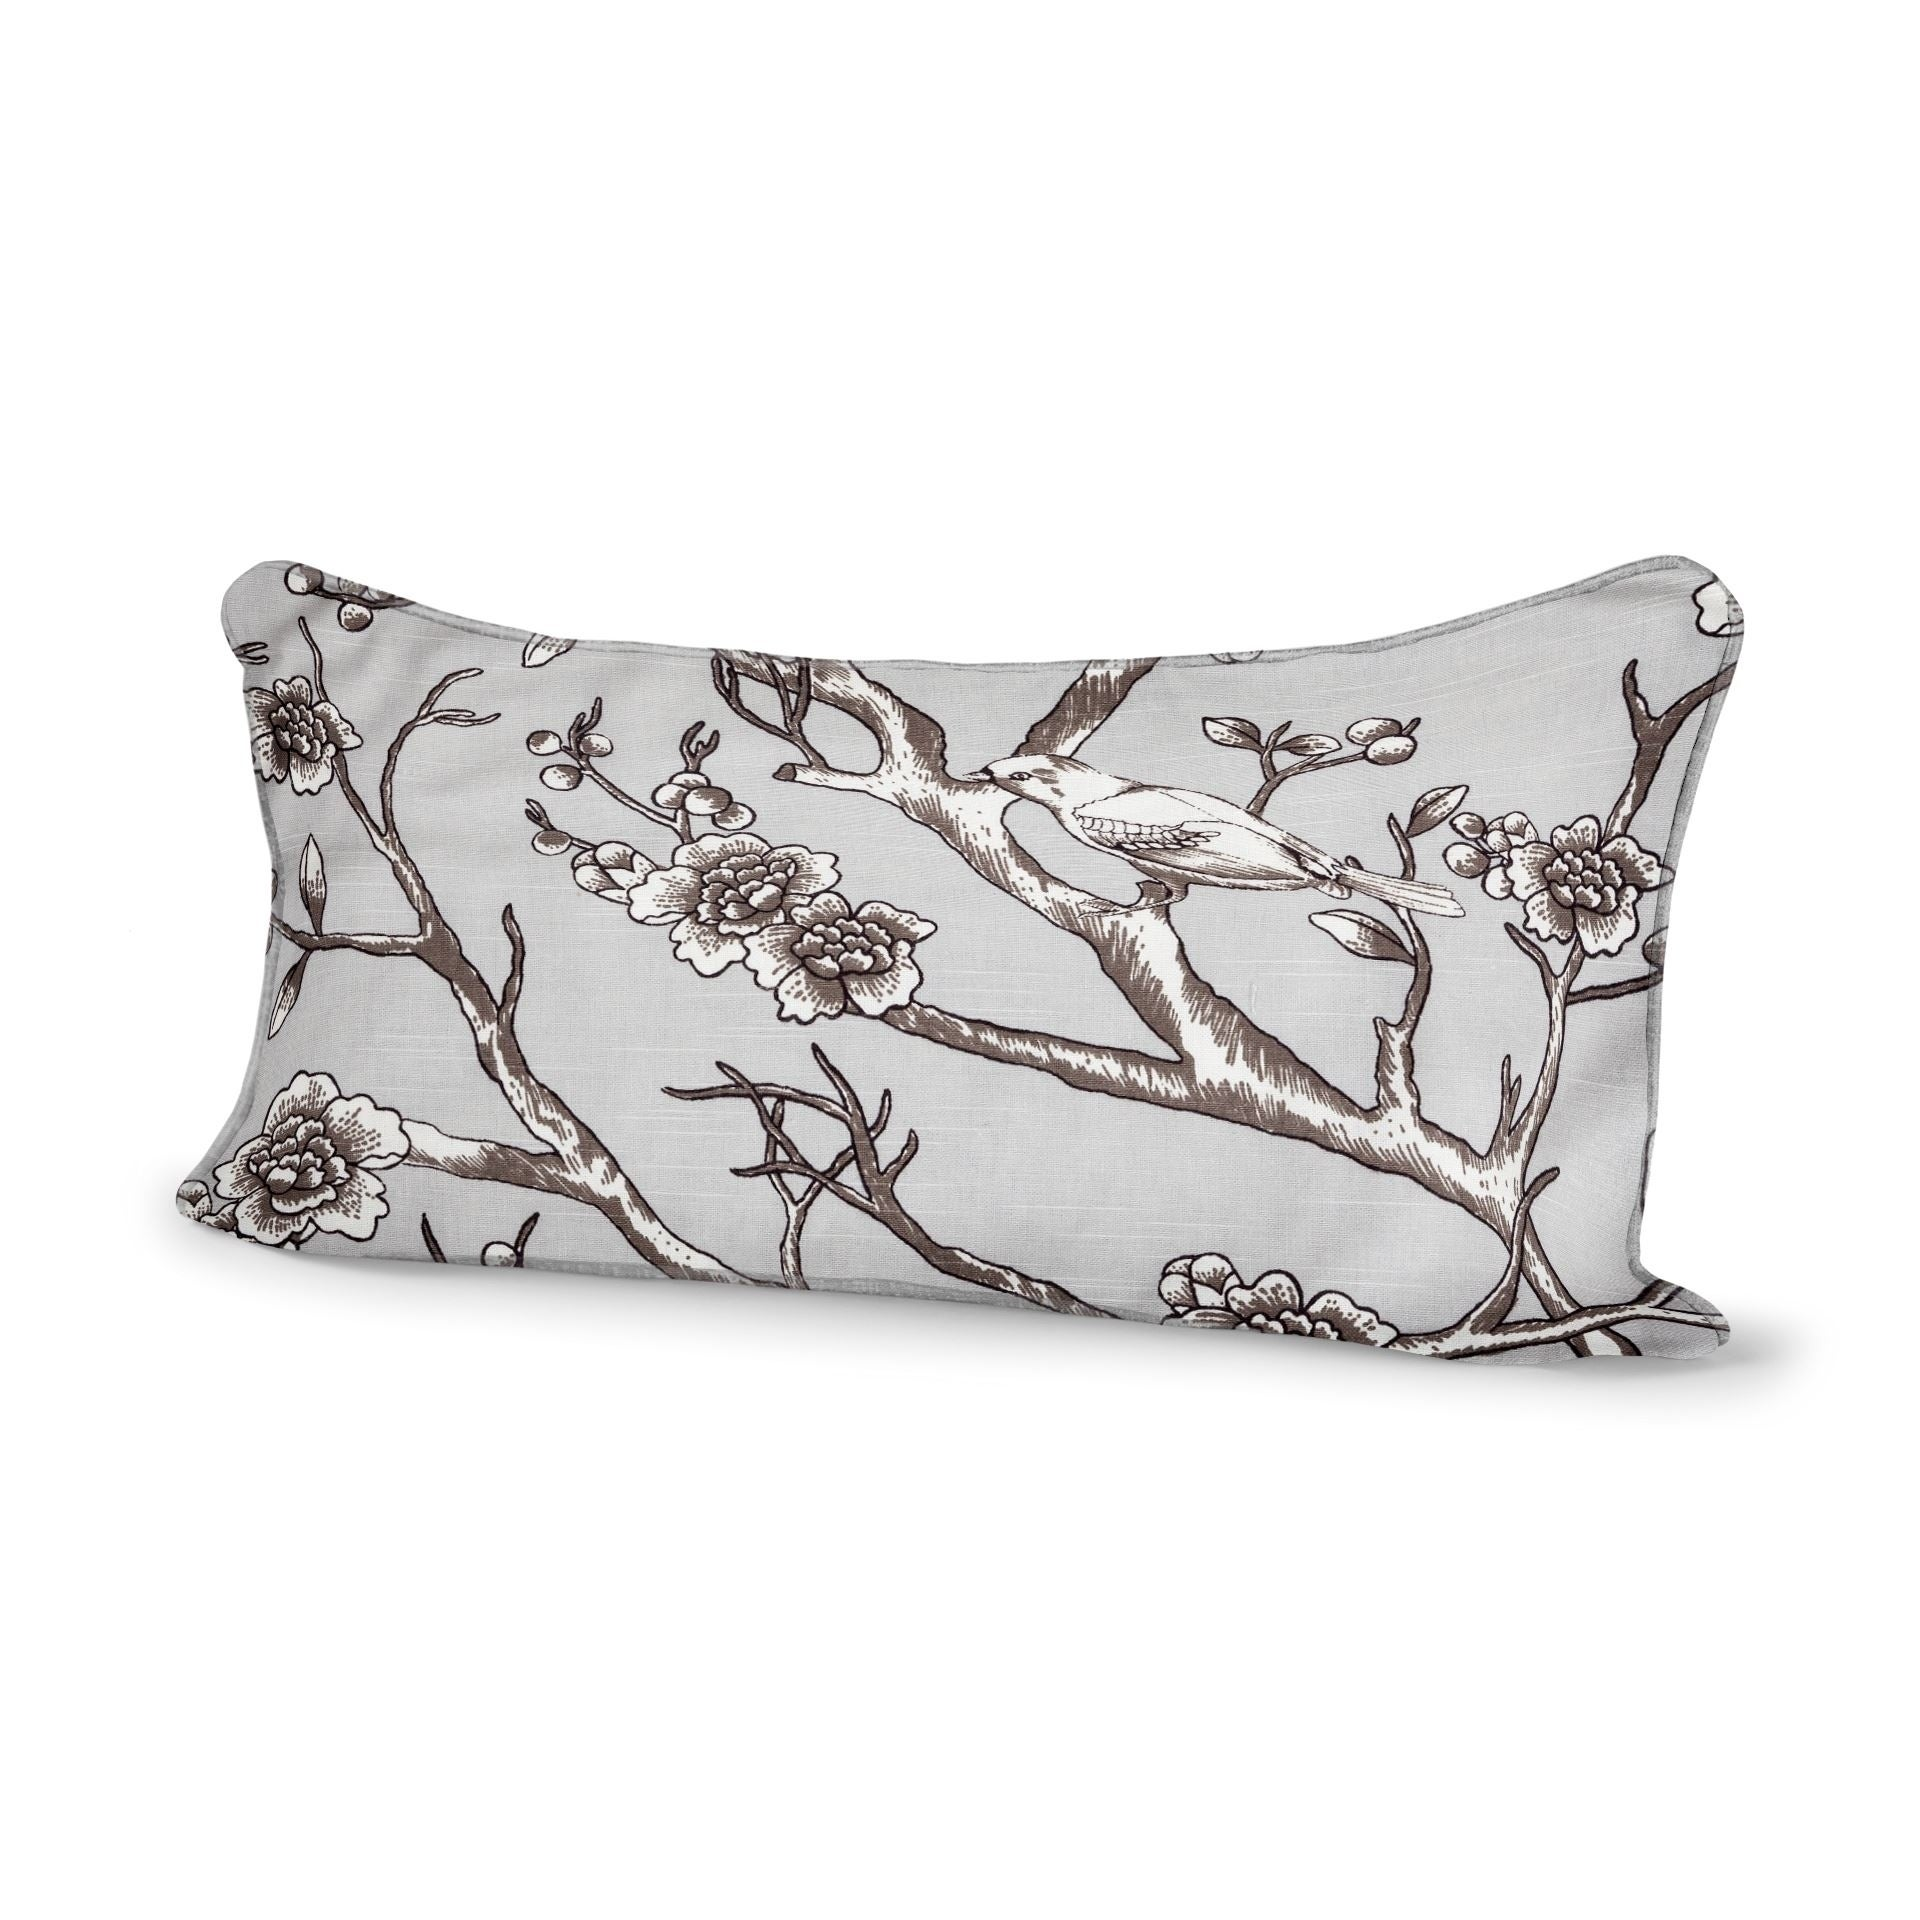 Mercana Aster IV 14 x 26 (cover only) Decorative Pillow